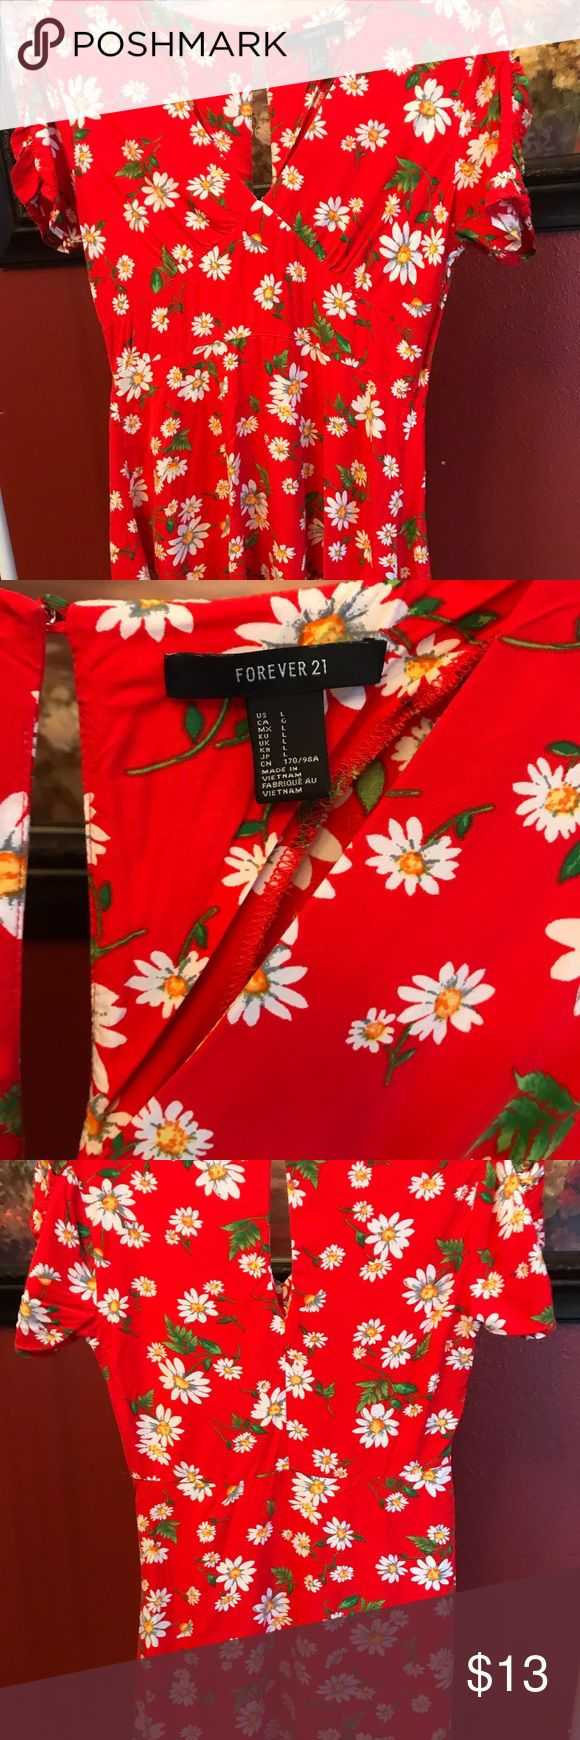 "🔥Forever 21 Red Flower Dress🔥 Length 23"" Bust 17"" 100% Rayon  Location P3 Forever 21 Dresses Mini"